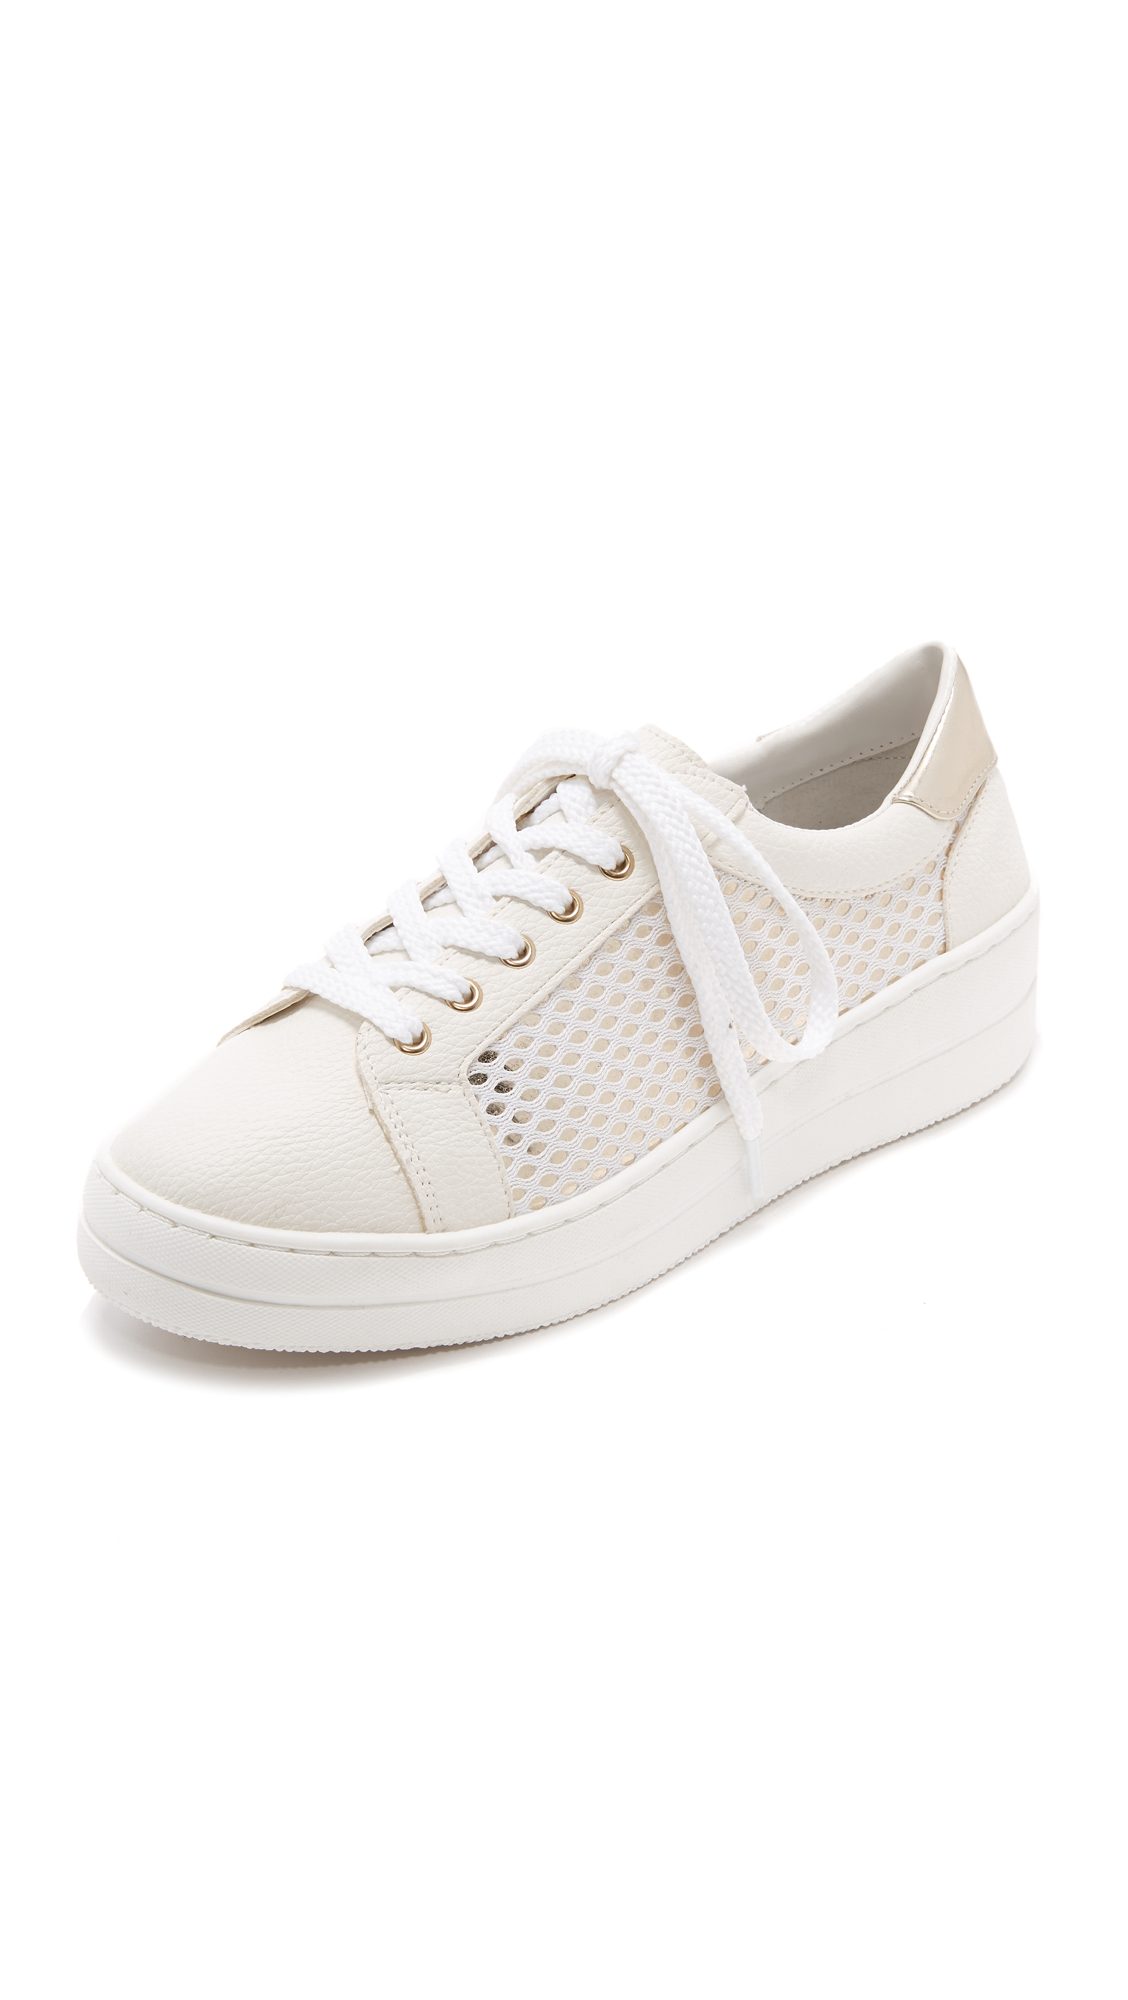 Steven Nyssa Lace Up Sneakers - White Multi